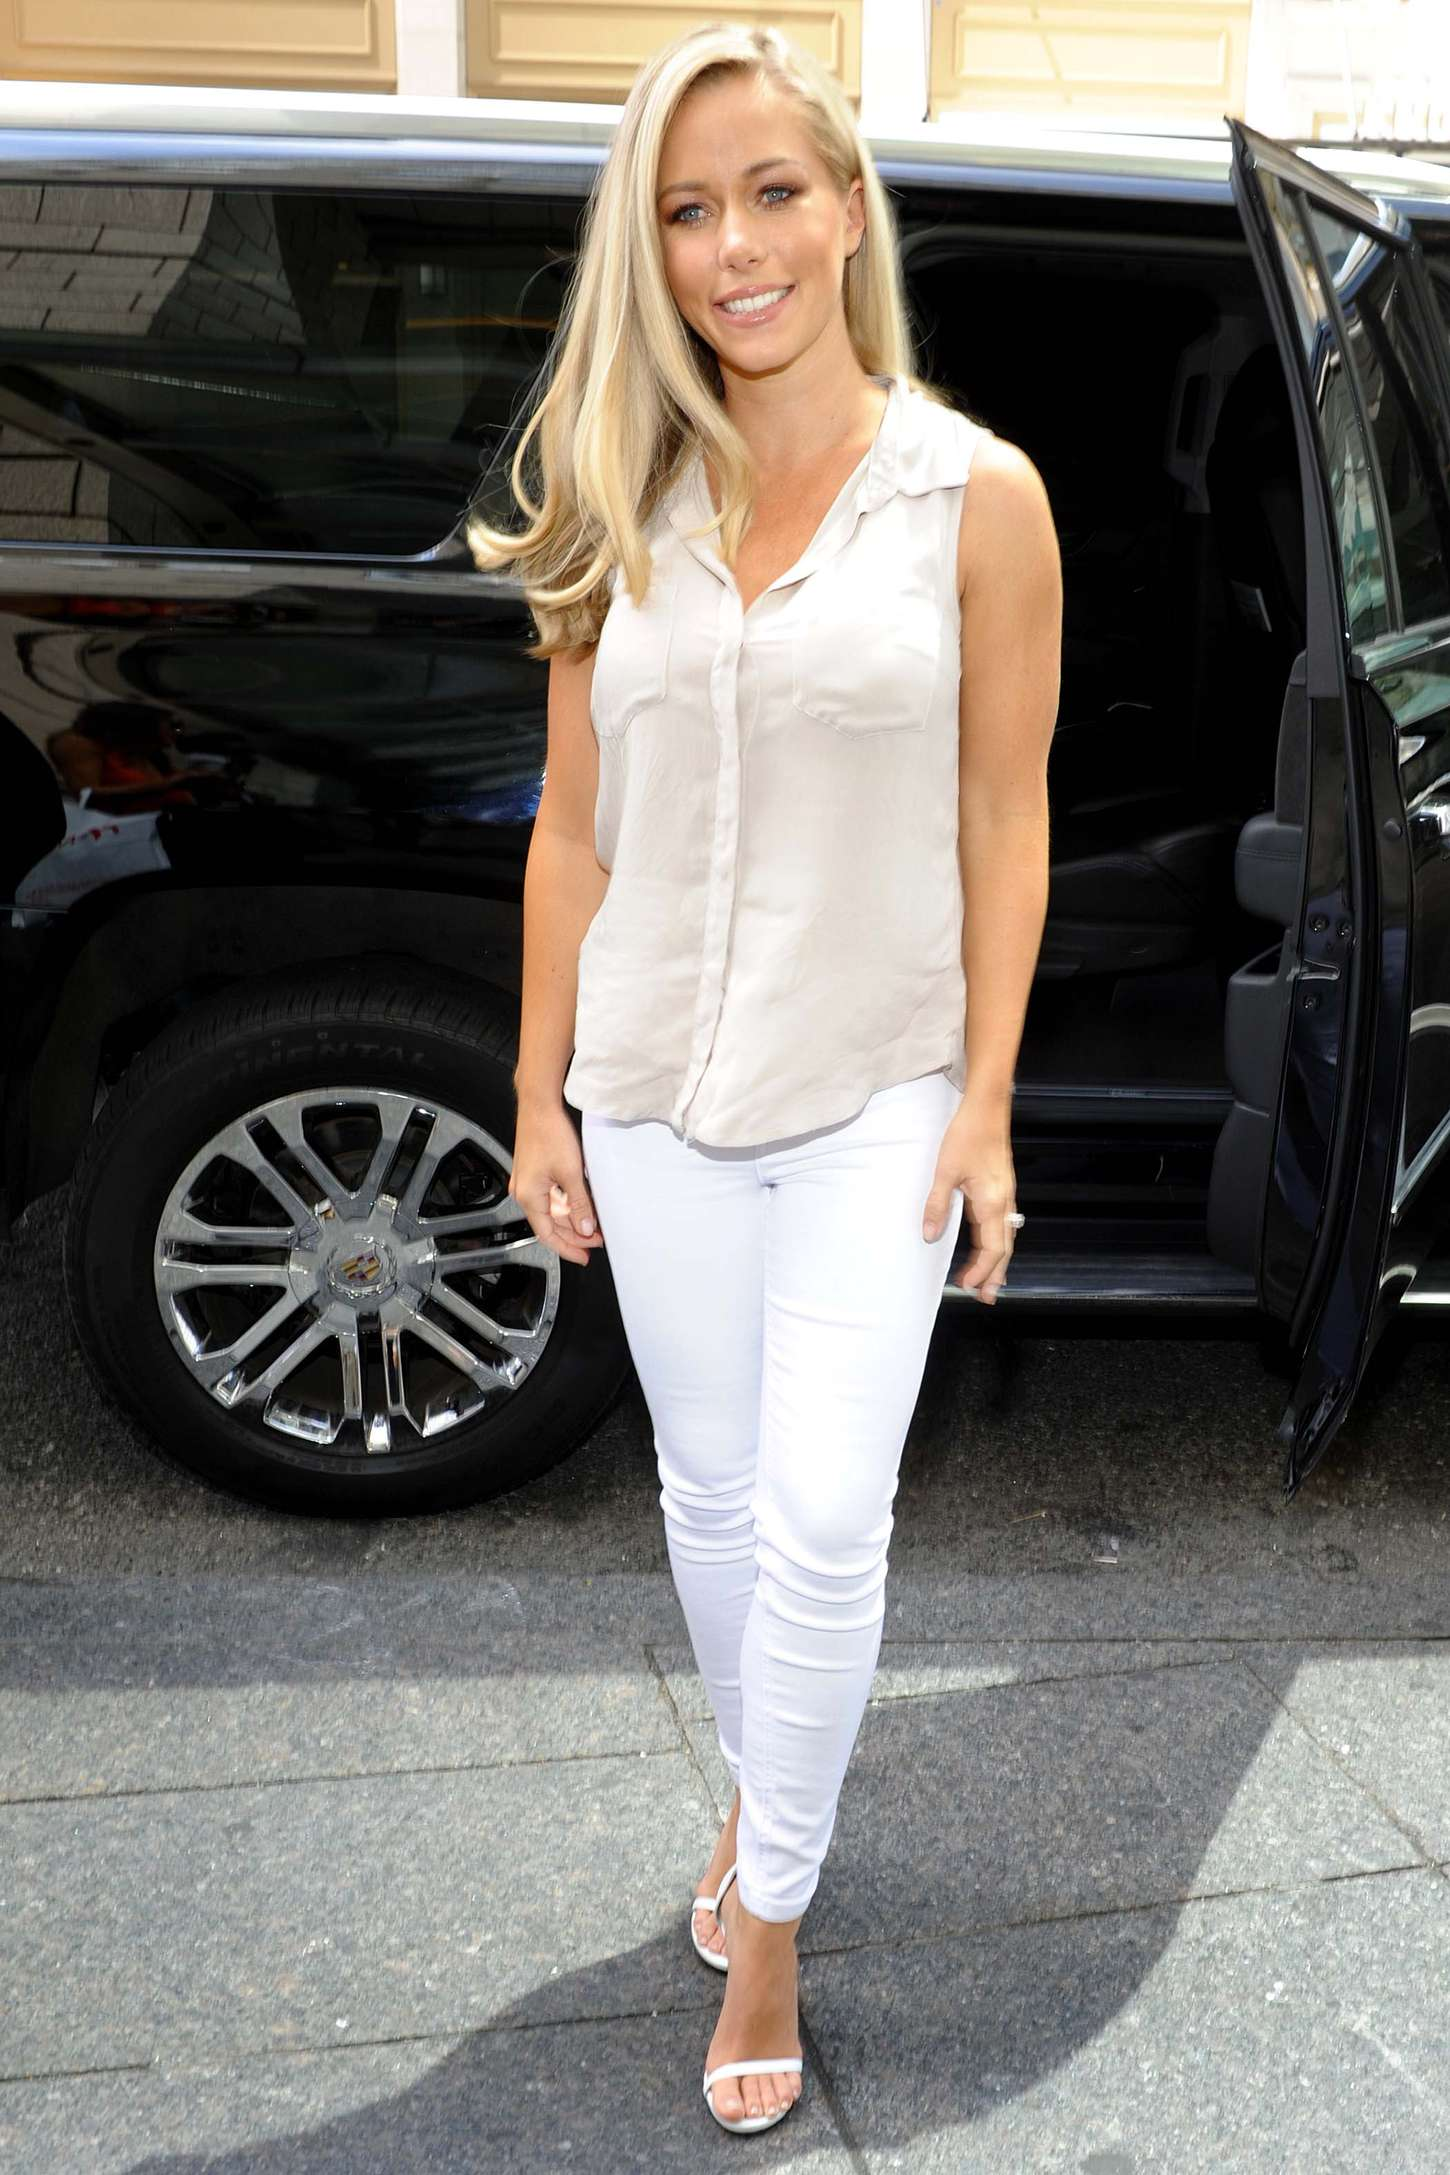 Kendra Wilkinson Promoting her TV Series Kendra on Top in New York